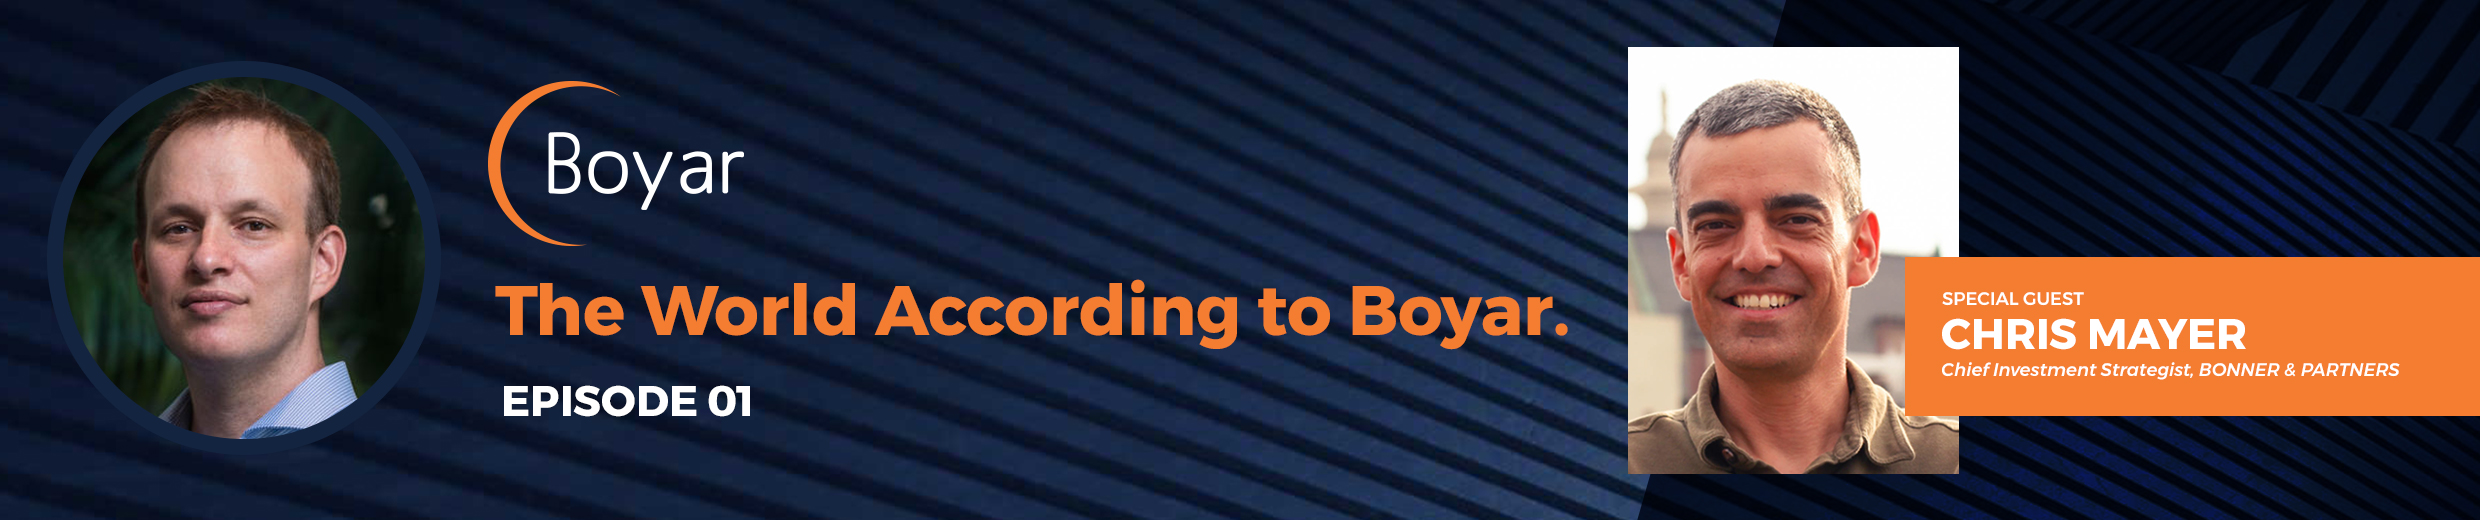 The World According to Boyar: Episode 1 with Chris Mayer